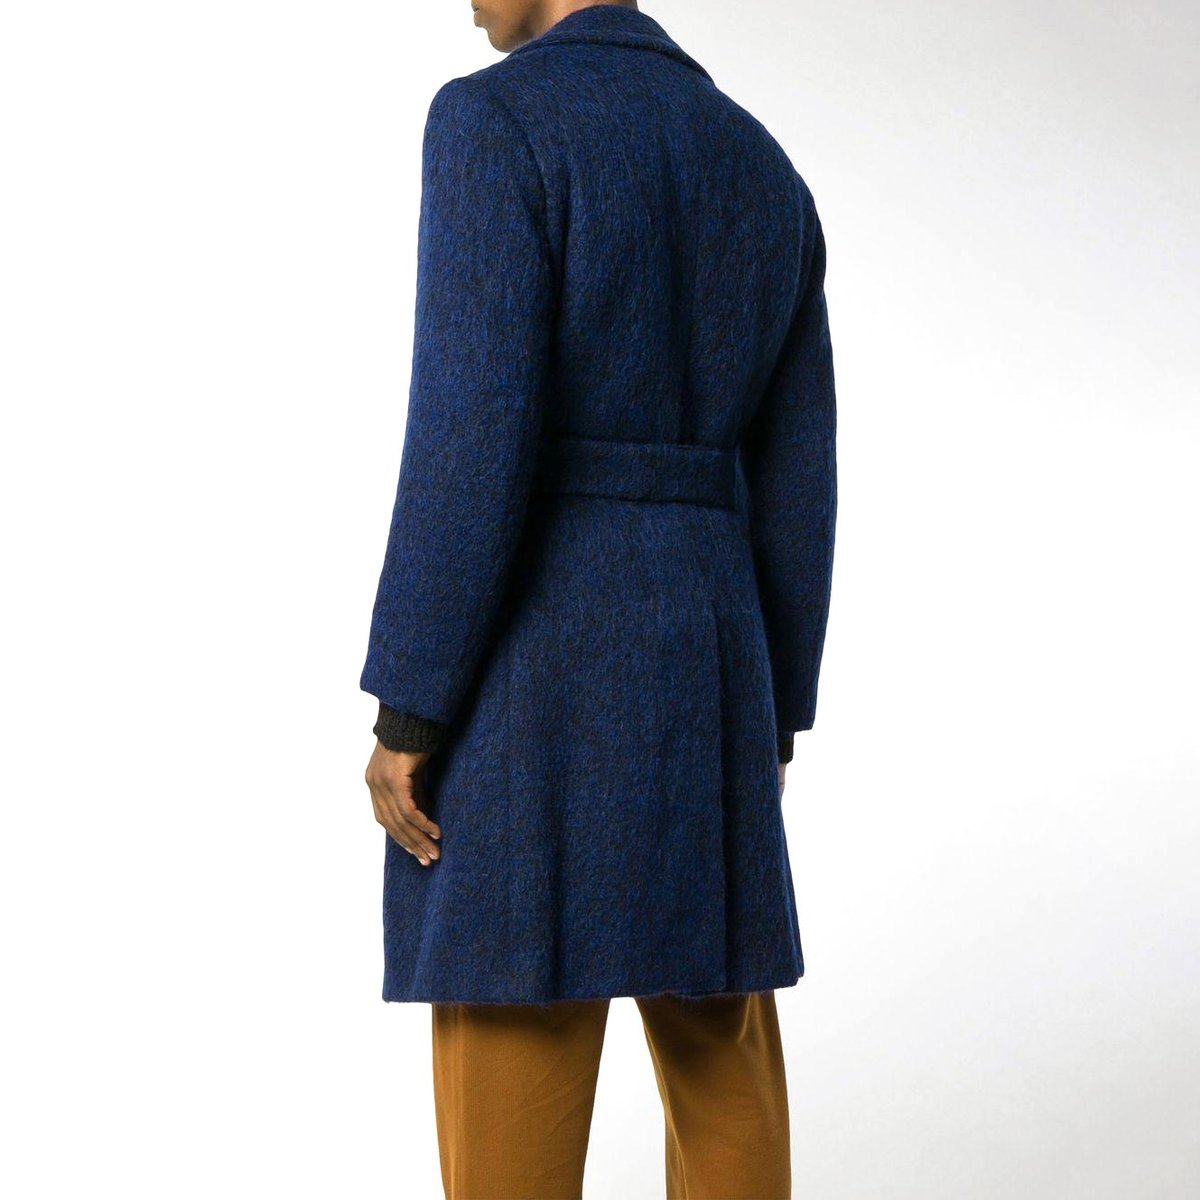 mp-massimo-piombo-BLUE-Mp-Massimo-Piombo-Belted-Double-Breasted-Coat (3).jpg